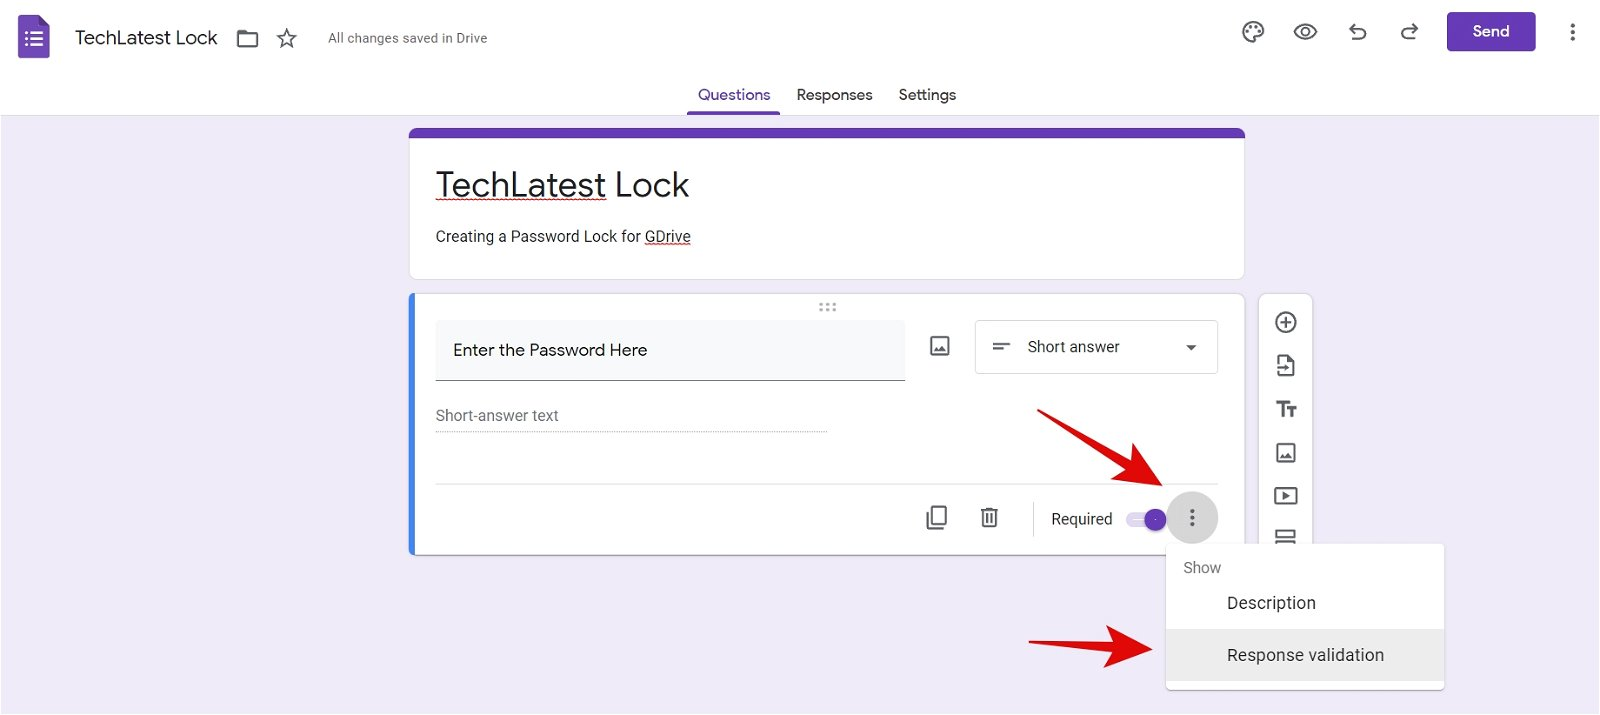 1634124294_770_How-to-Password-Protect-a-Google-Drive-Folder